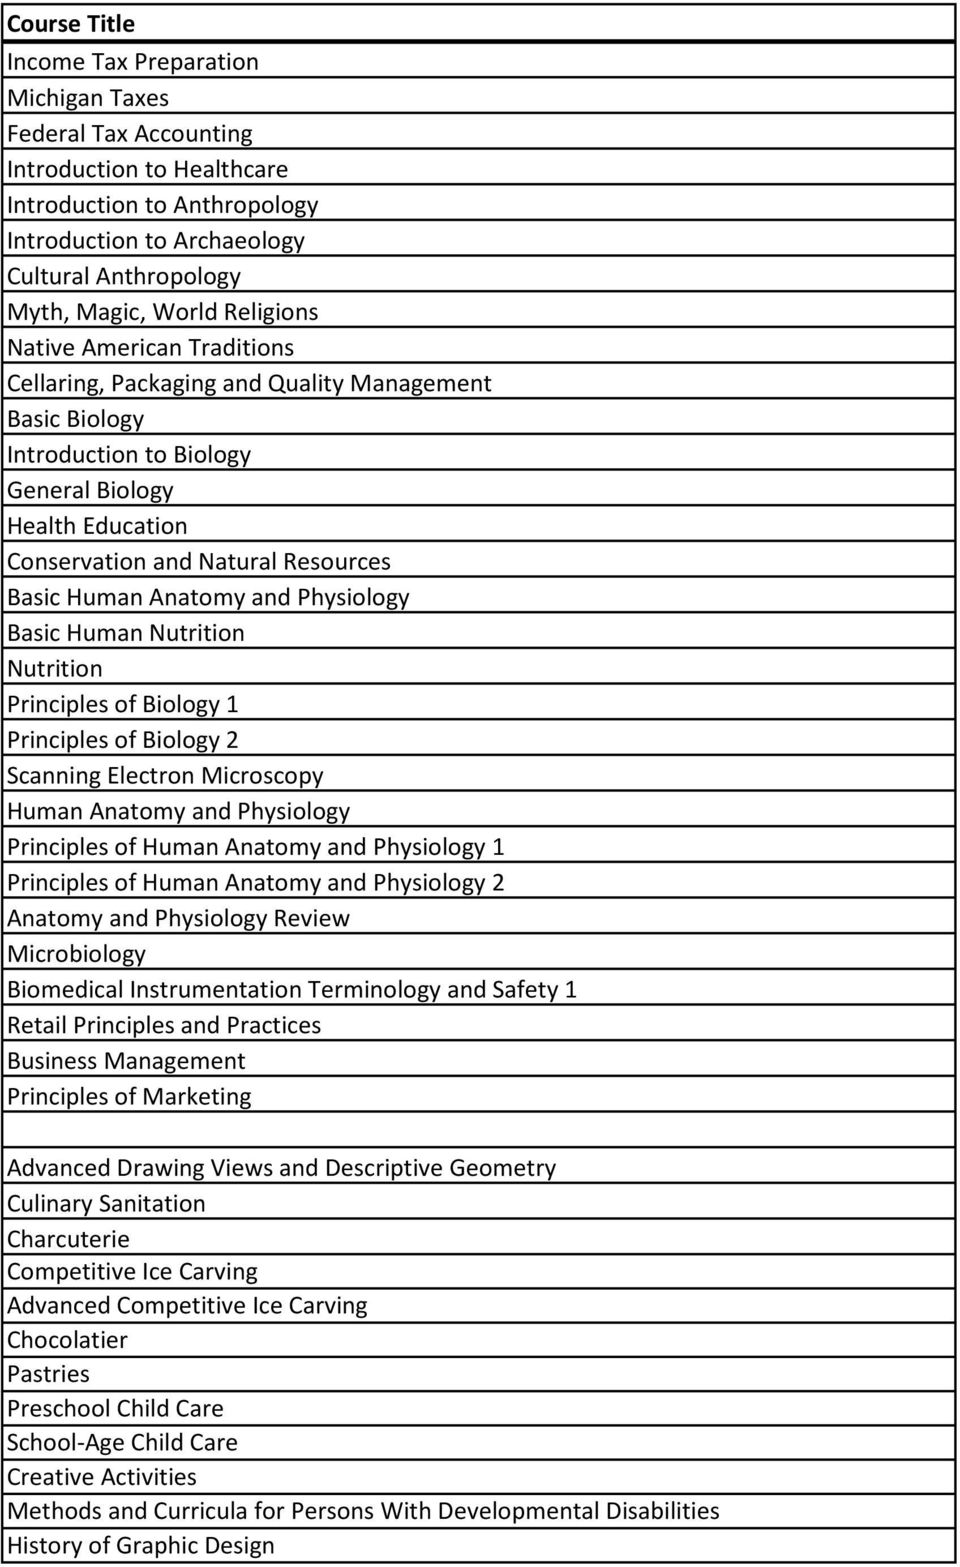 Anatomy and Physiology Basic Human Nutrition Nutrition Principles of Biology 1 Principles of Biology 2 Scanning Electron Microscopy Human Anatomy and Physiology Principles of Human Anatomy and